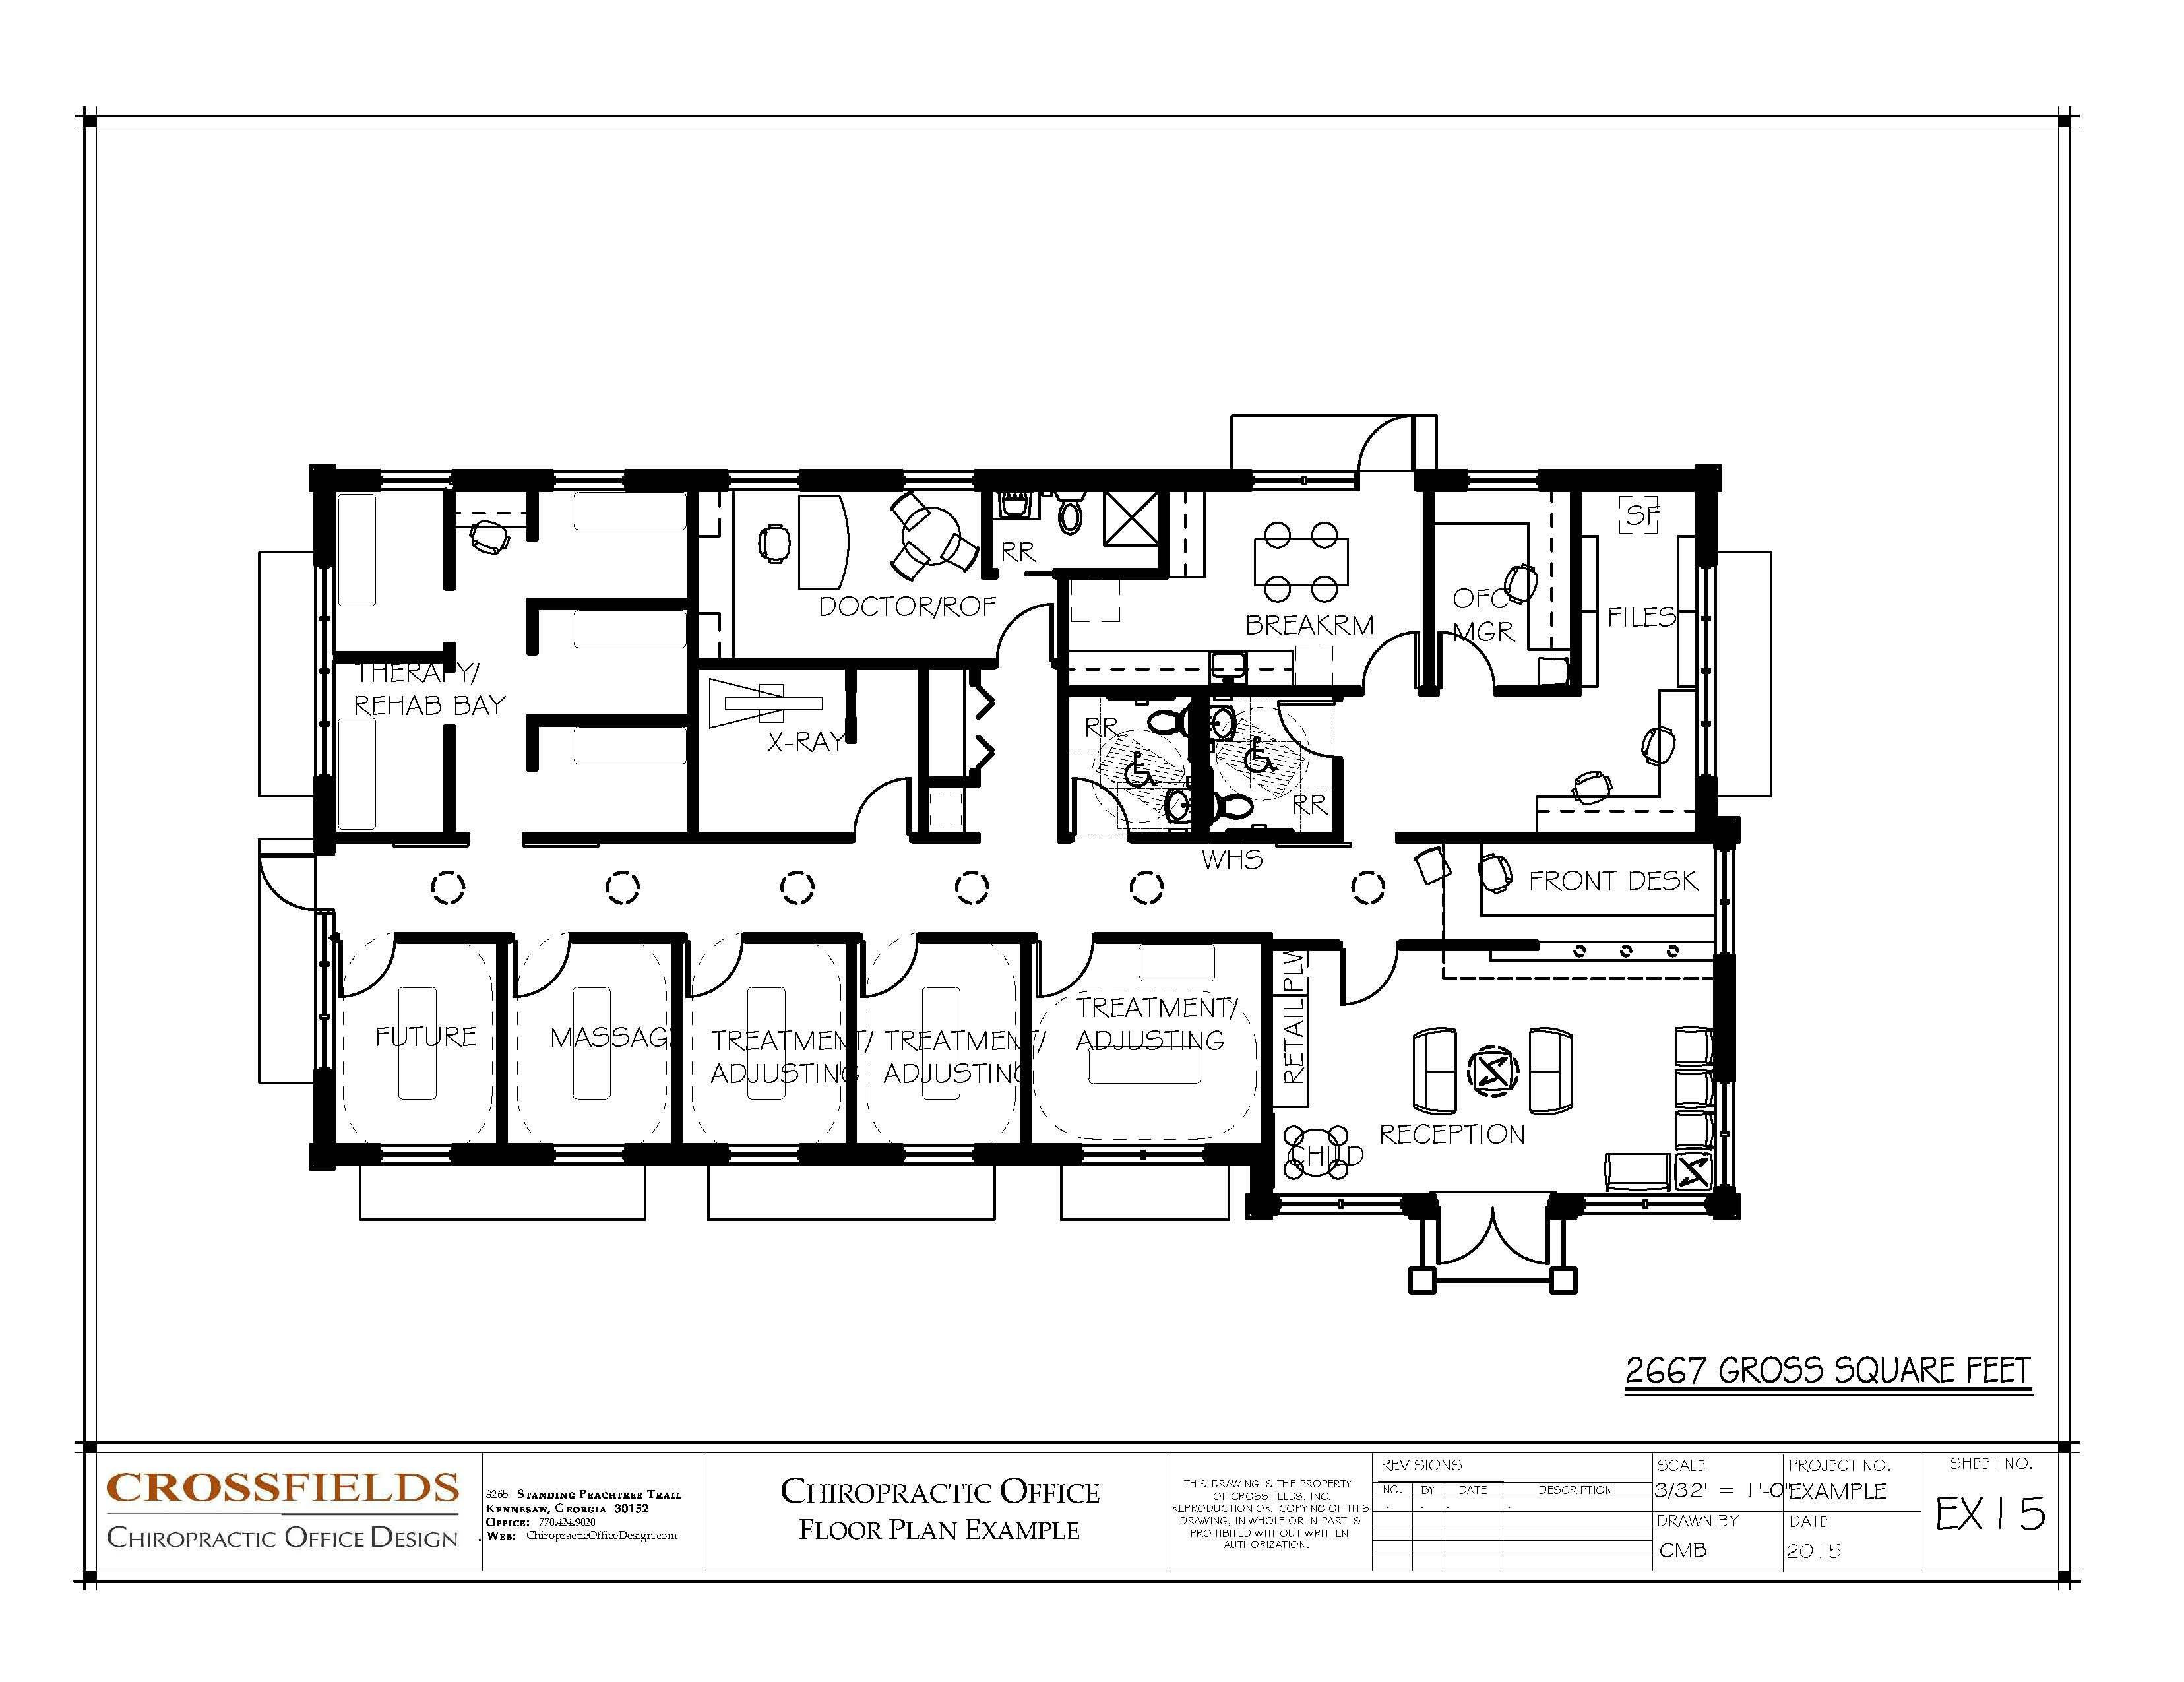 Chiropractic Office Floorplan Closed Adjusting With